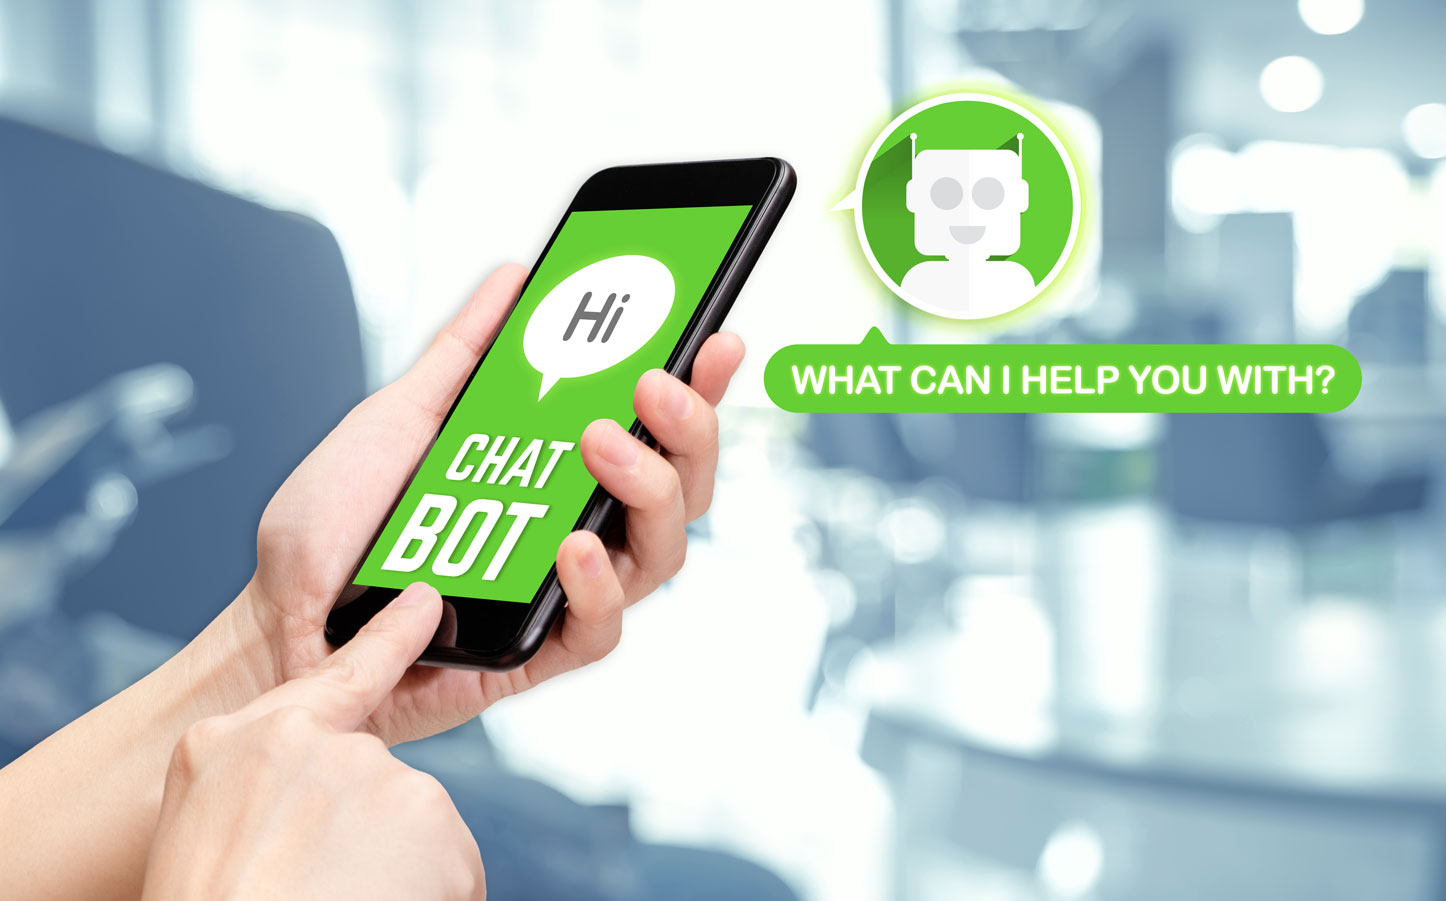 Chatbot AI - Digital Marketing